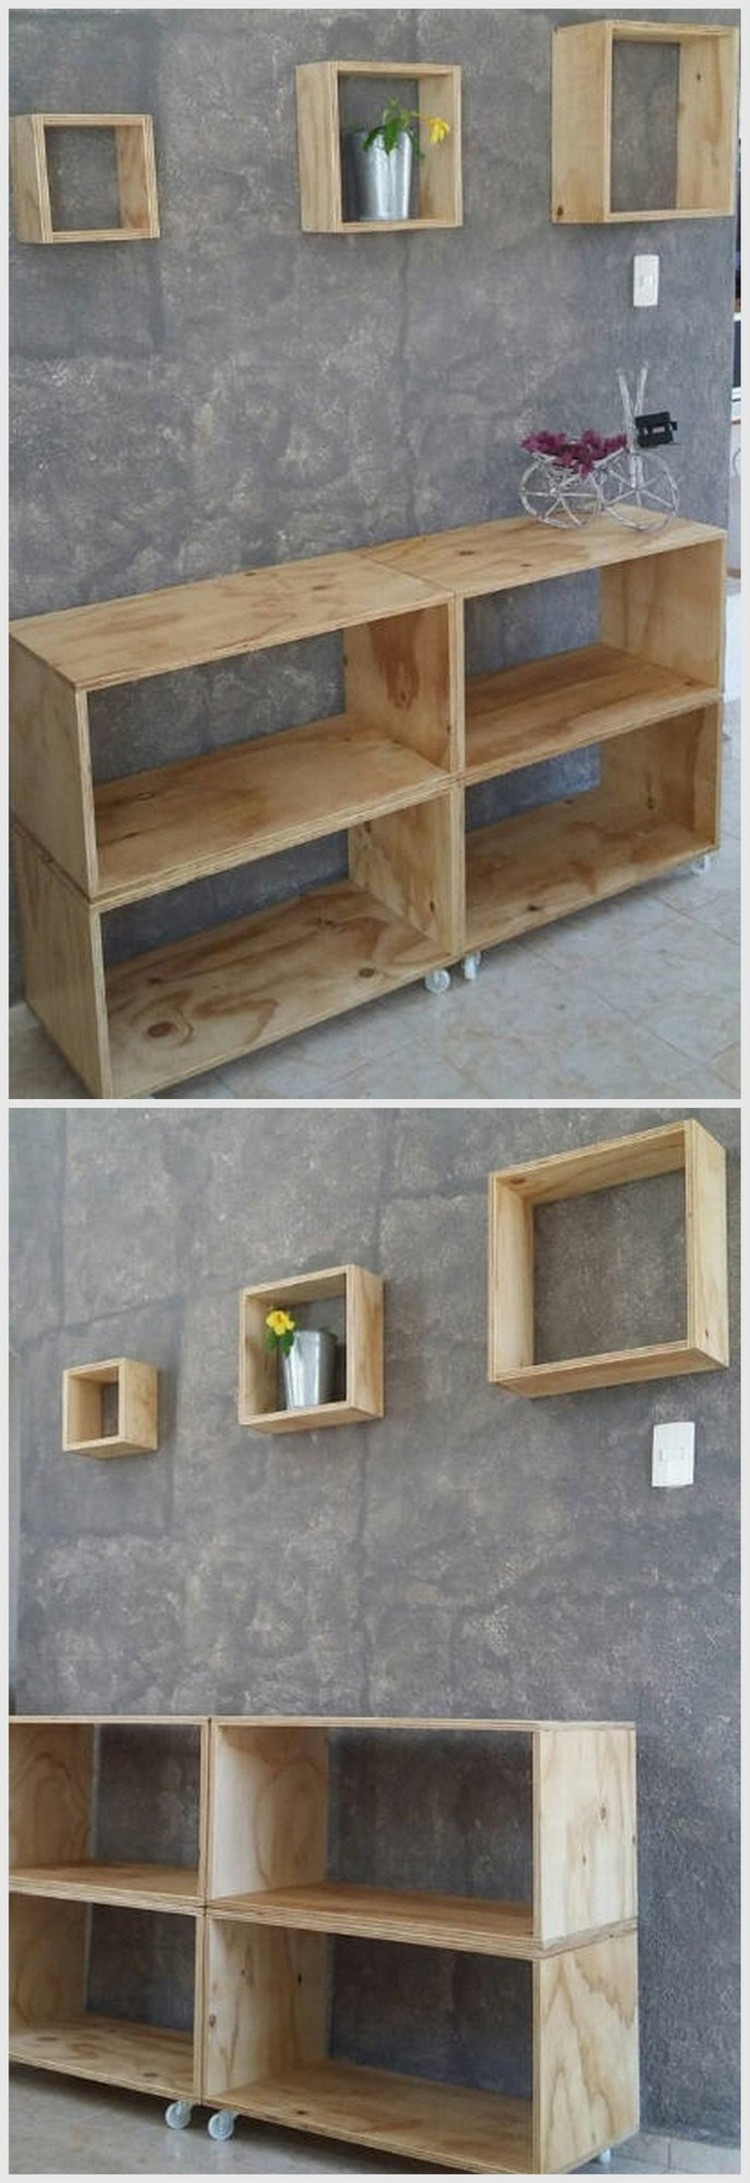 Recycling ideas with old shipping pallets pallet wood for Pallet ideas